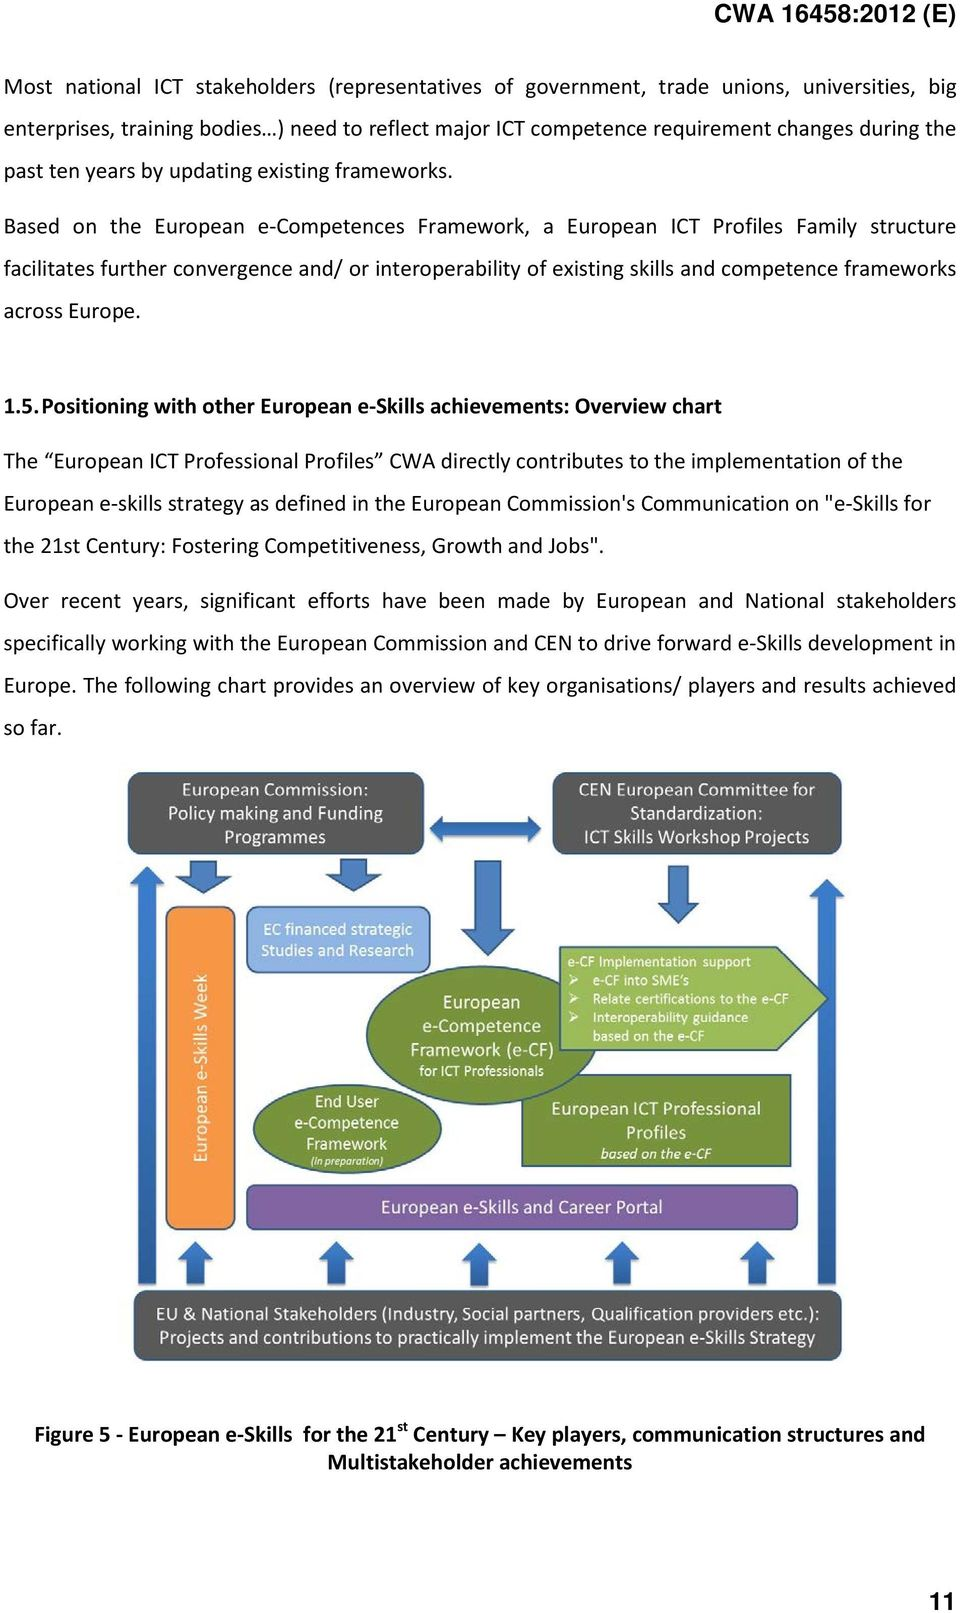 Based on the European e-competences Framework, a European ICT Profiles Family structure facilitates further convergence and/ or interoperability of existing skills and competence frameworks across